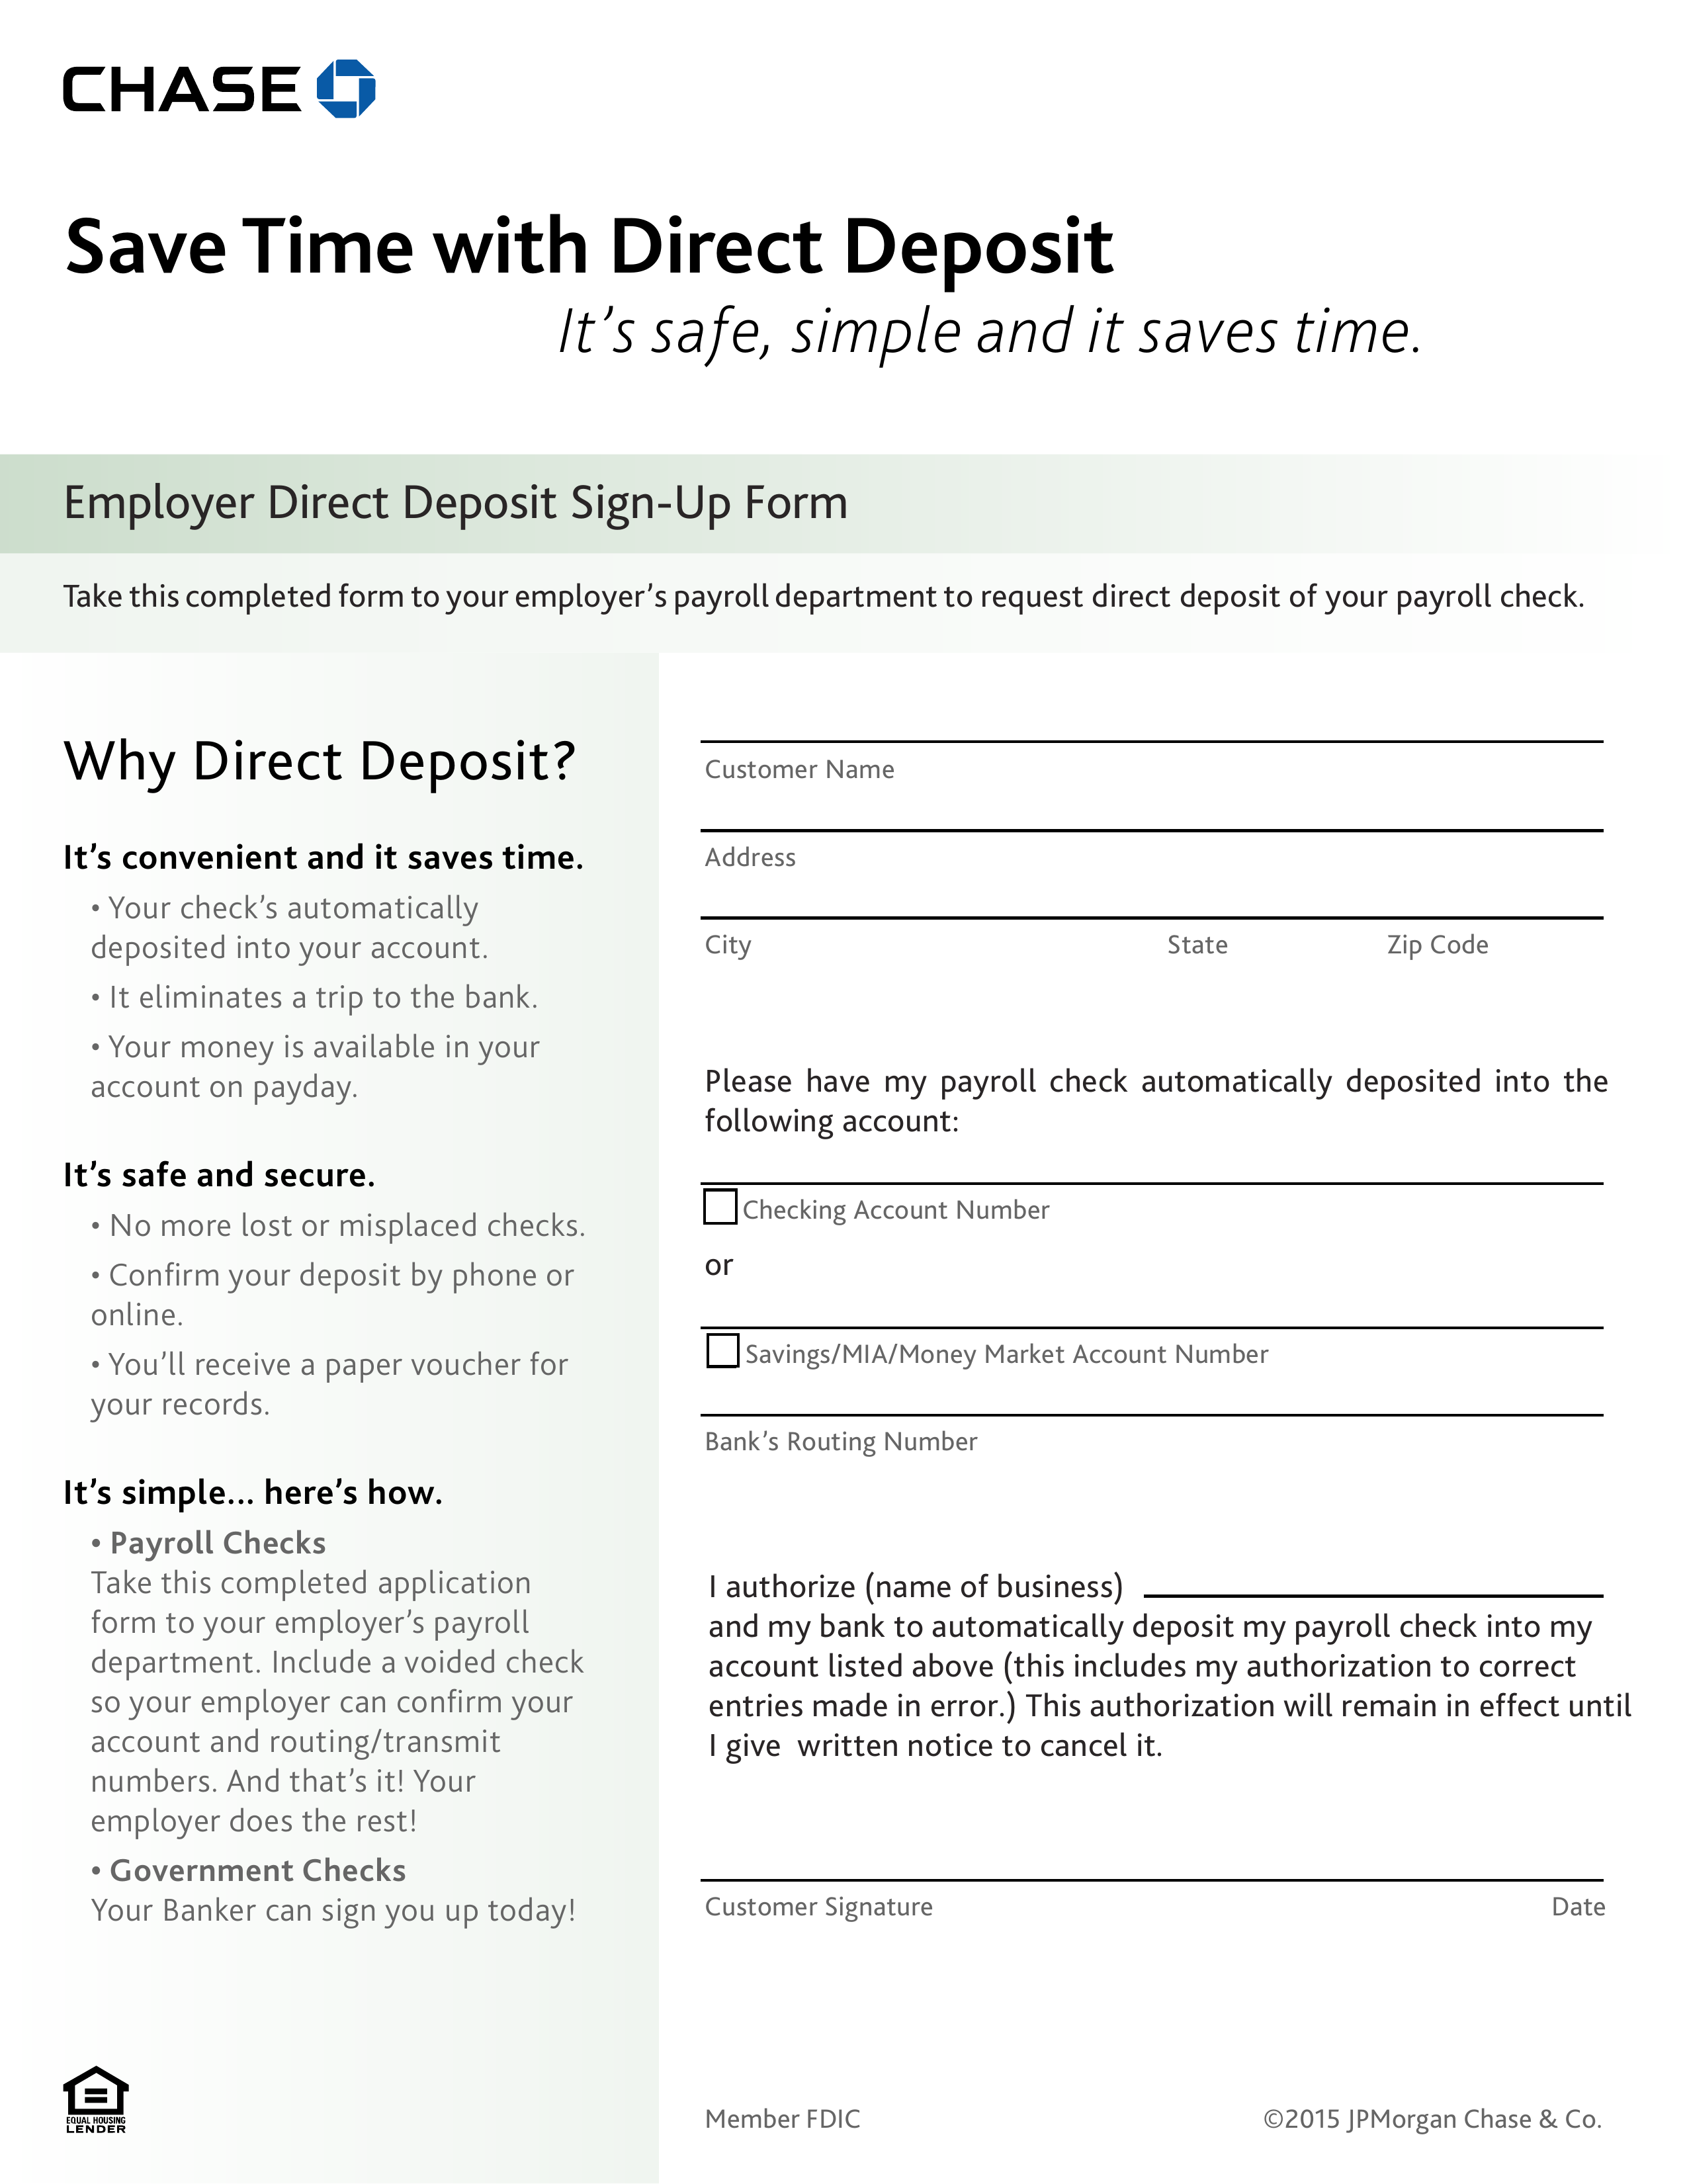 Free Chase Bank Direct Deposit Form - PDF | eForms – Free ... on